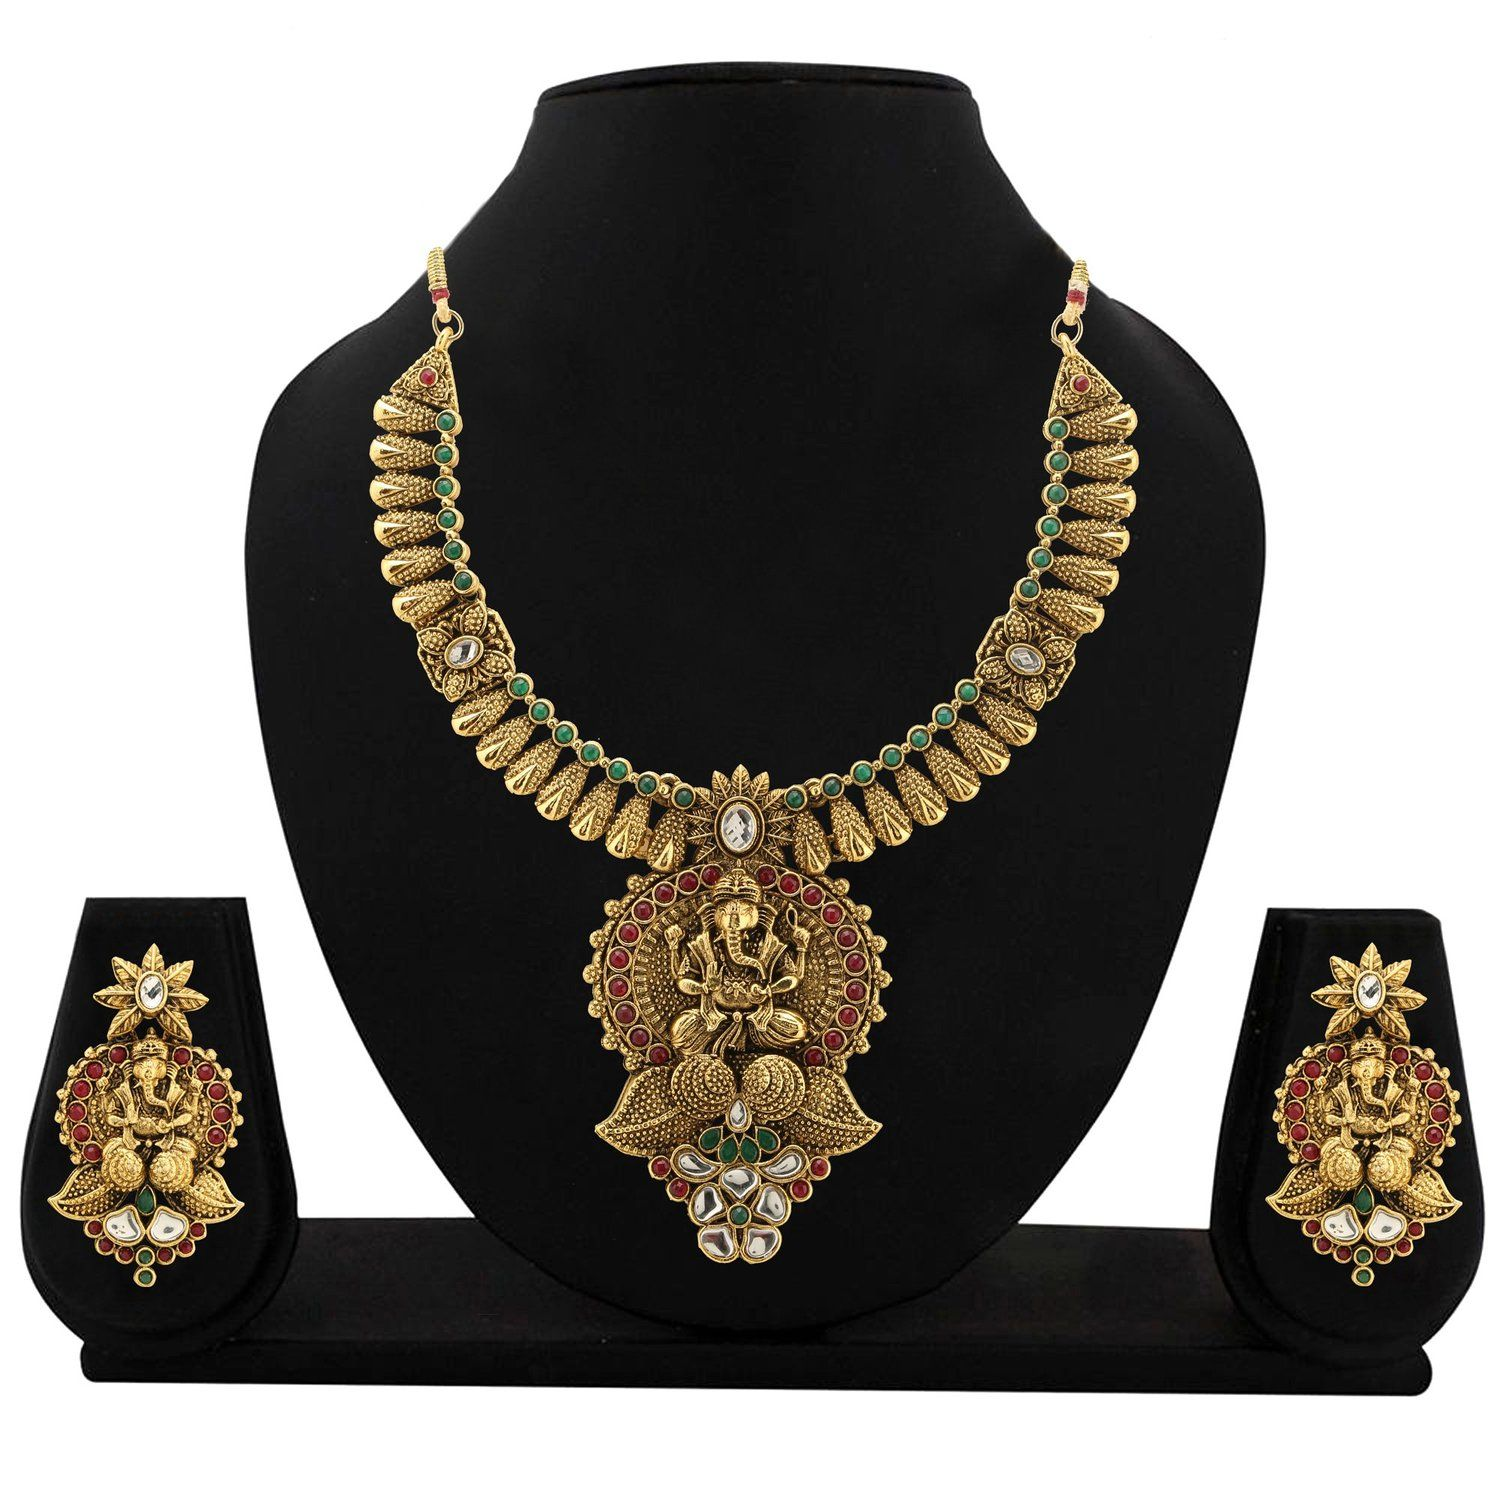 Buy Temple Jewellery Necklace Set By Zaveri Pearls Zpam17 Online At Low Prices In India Amazon Jeweller Temple Jewelry Necklace Amazon Jewelry Jewelry Stores